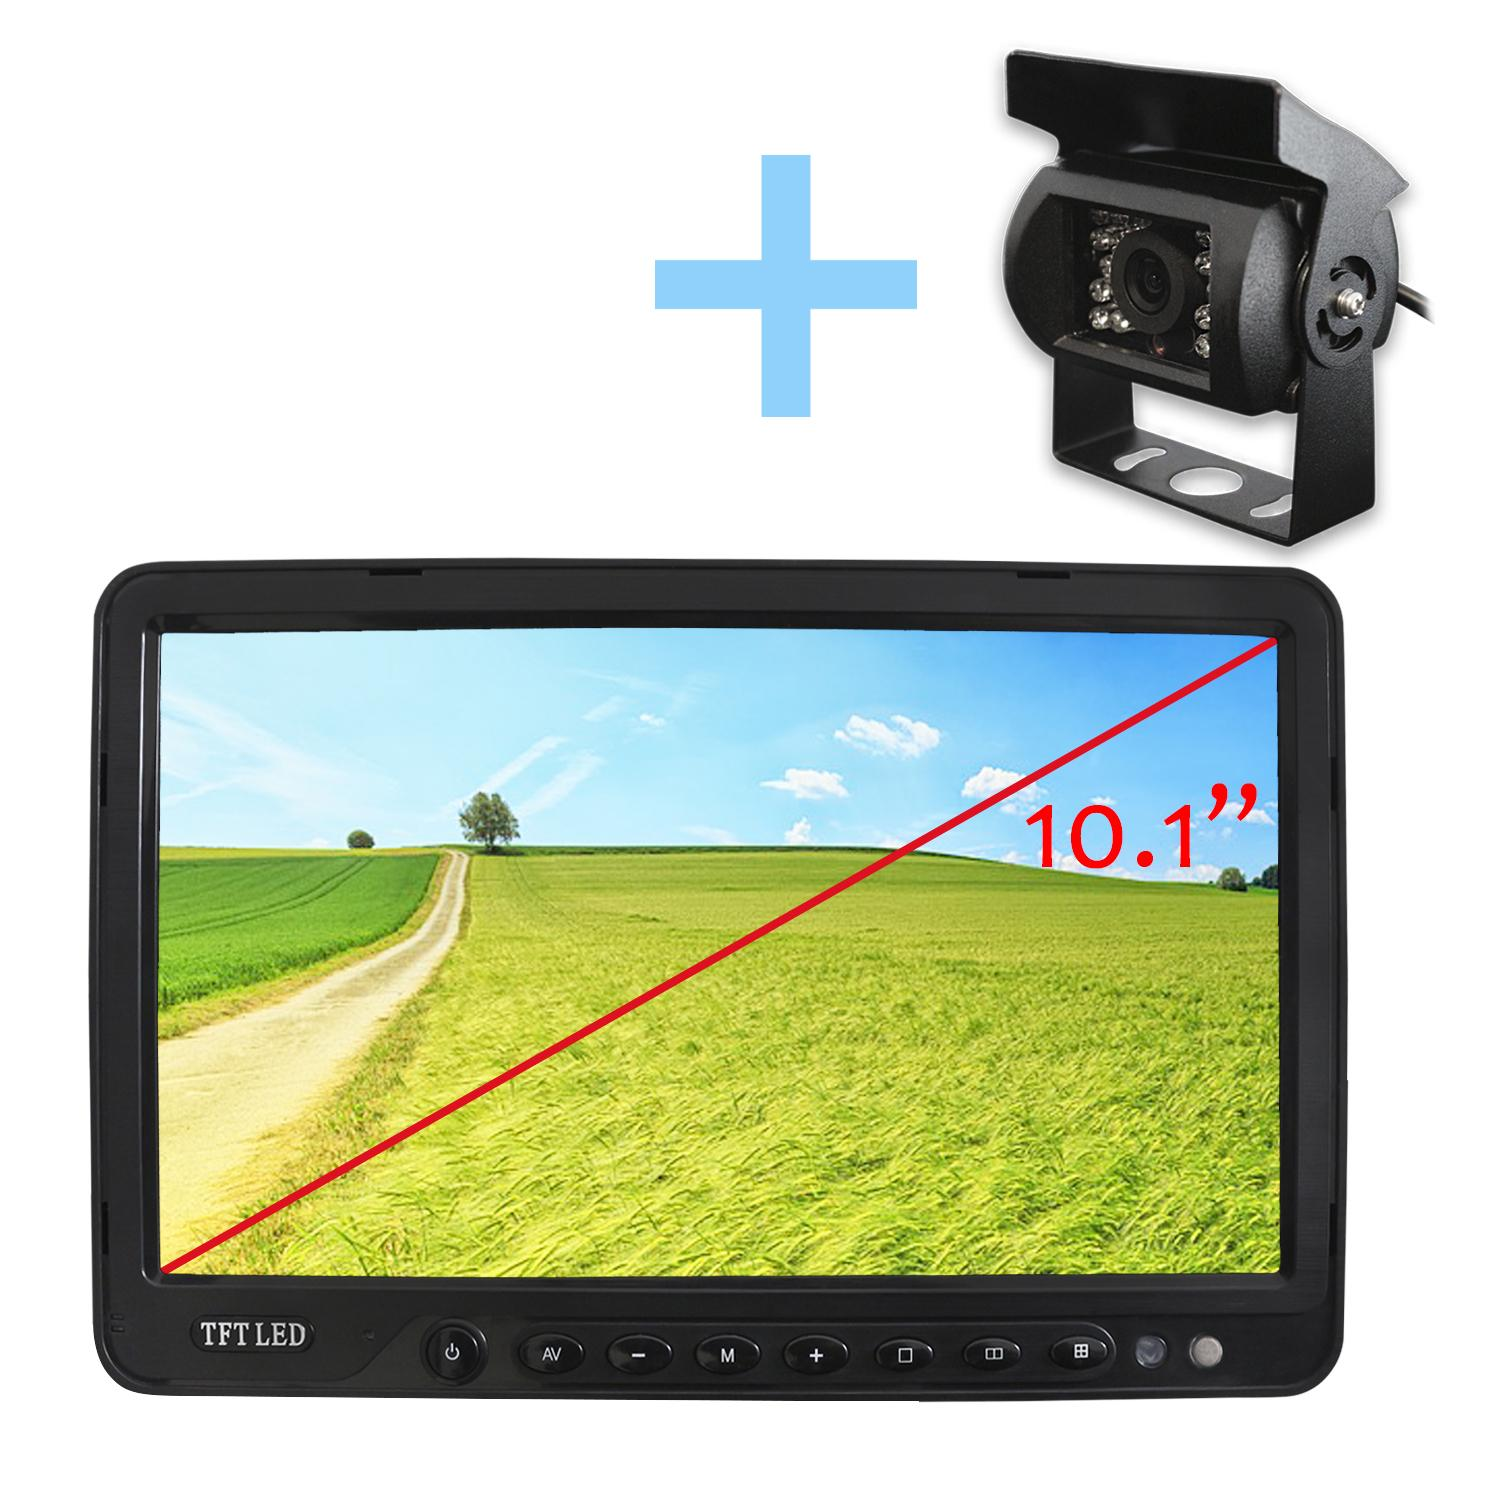 Kit for parking or reversing's camera with infrared and Screen 10,1 4 troughs